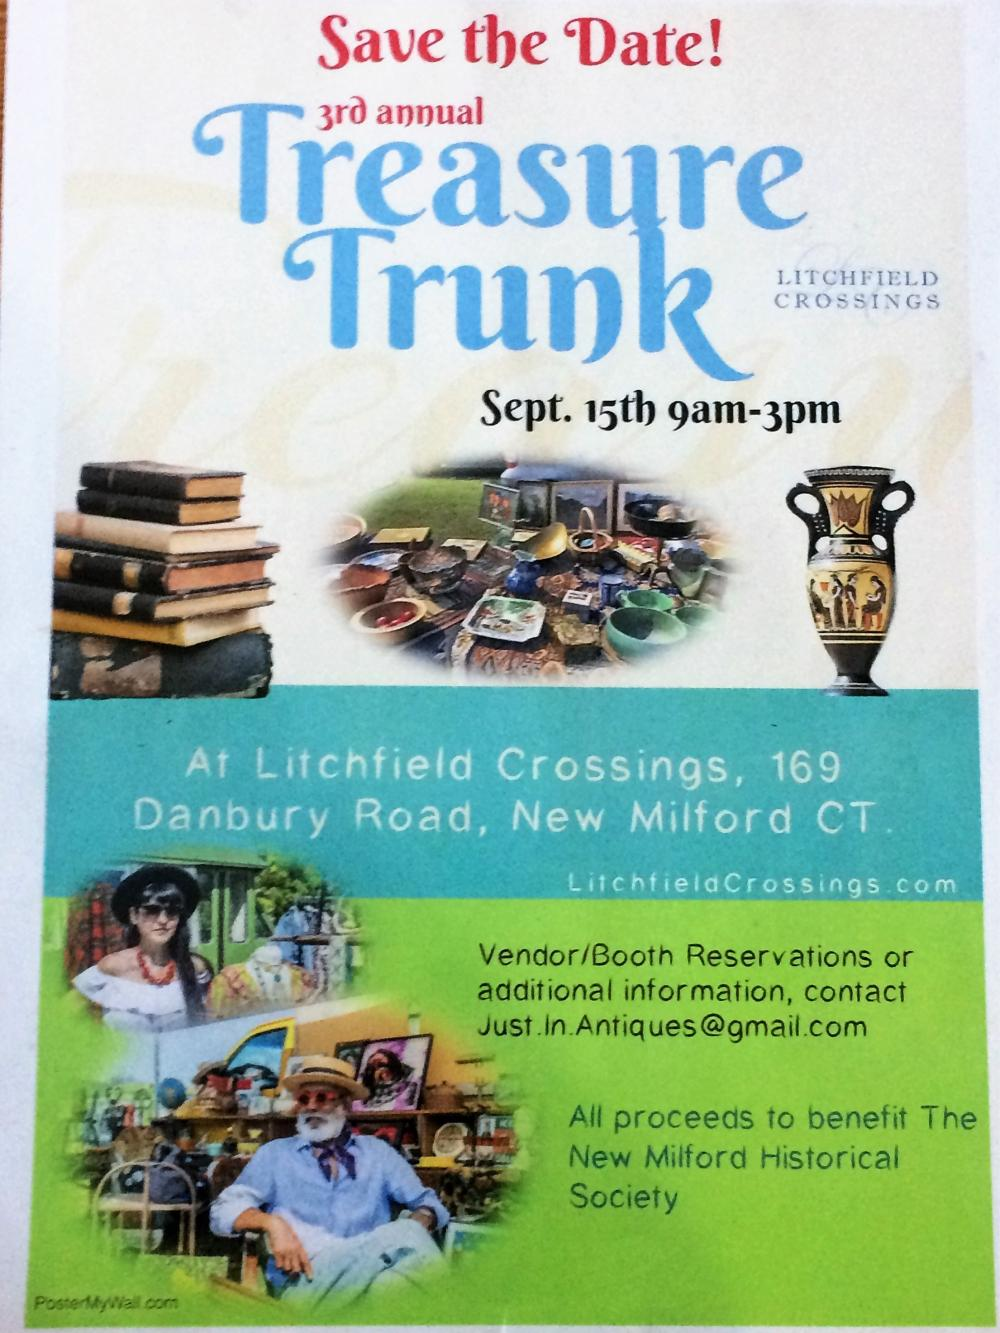 Join us for the 3rd Annual TREASURE TRUNK from 9am - 3pm at Litchfield Crossings 169 Danbury Rd (acr